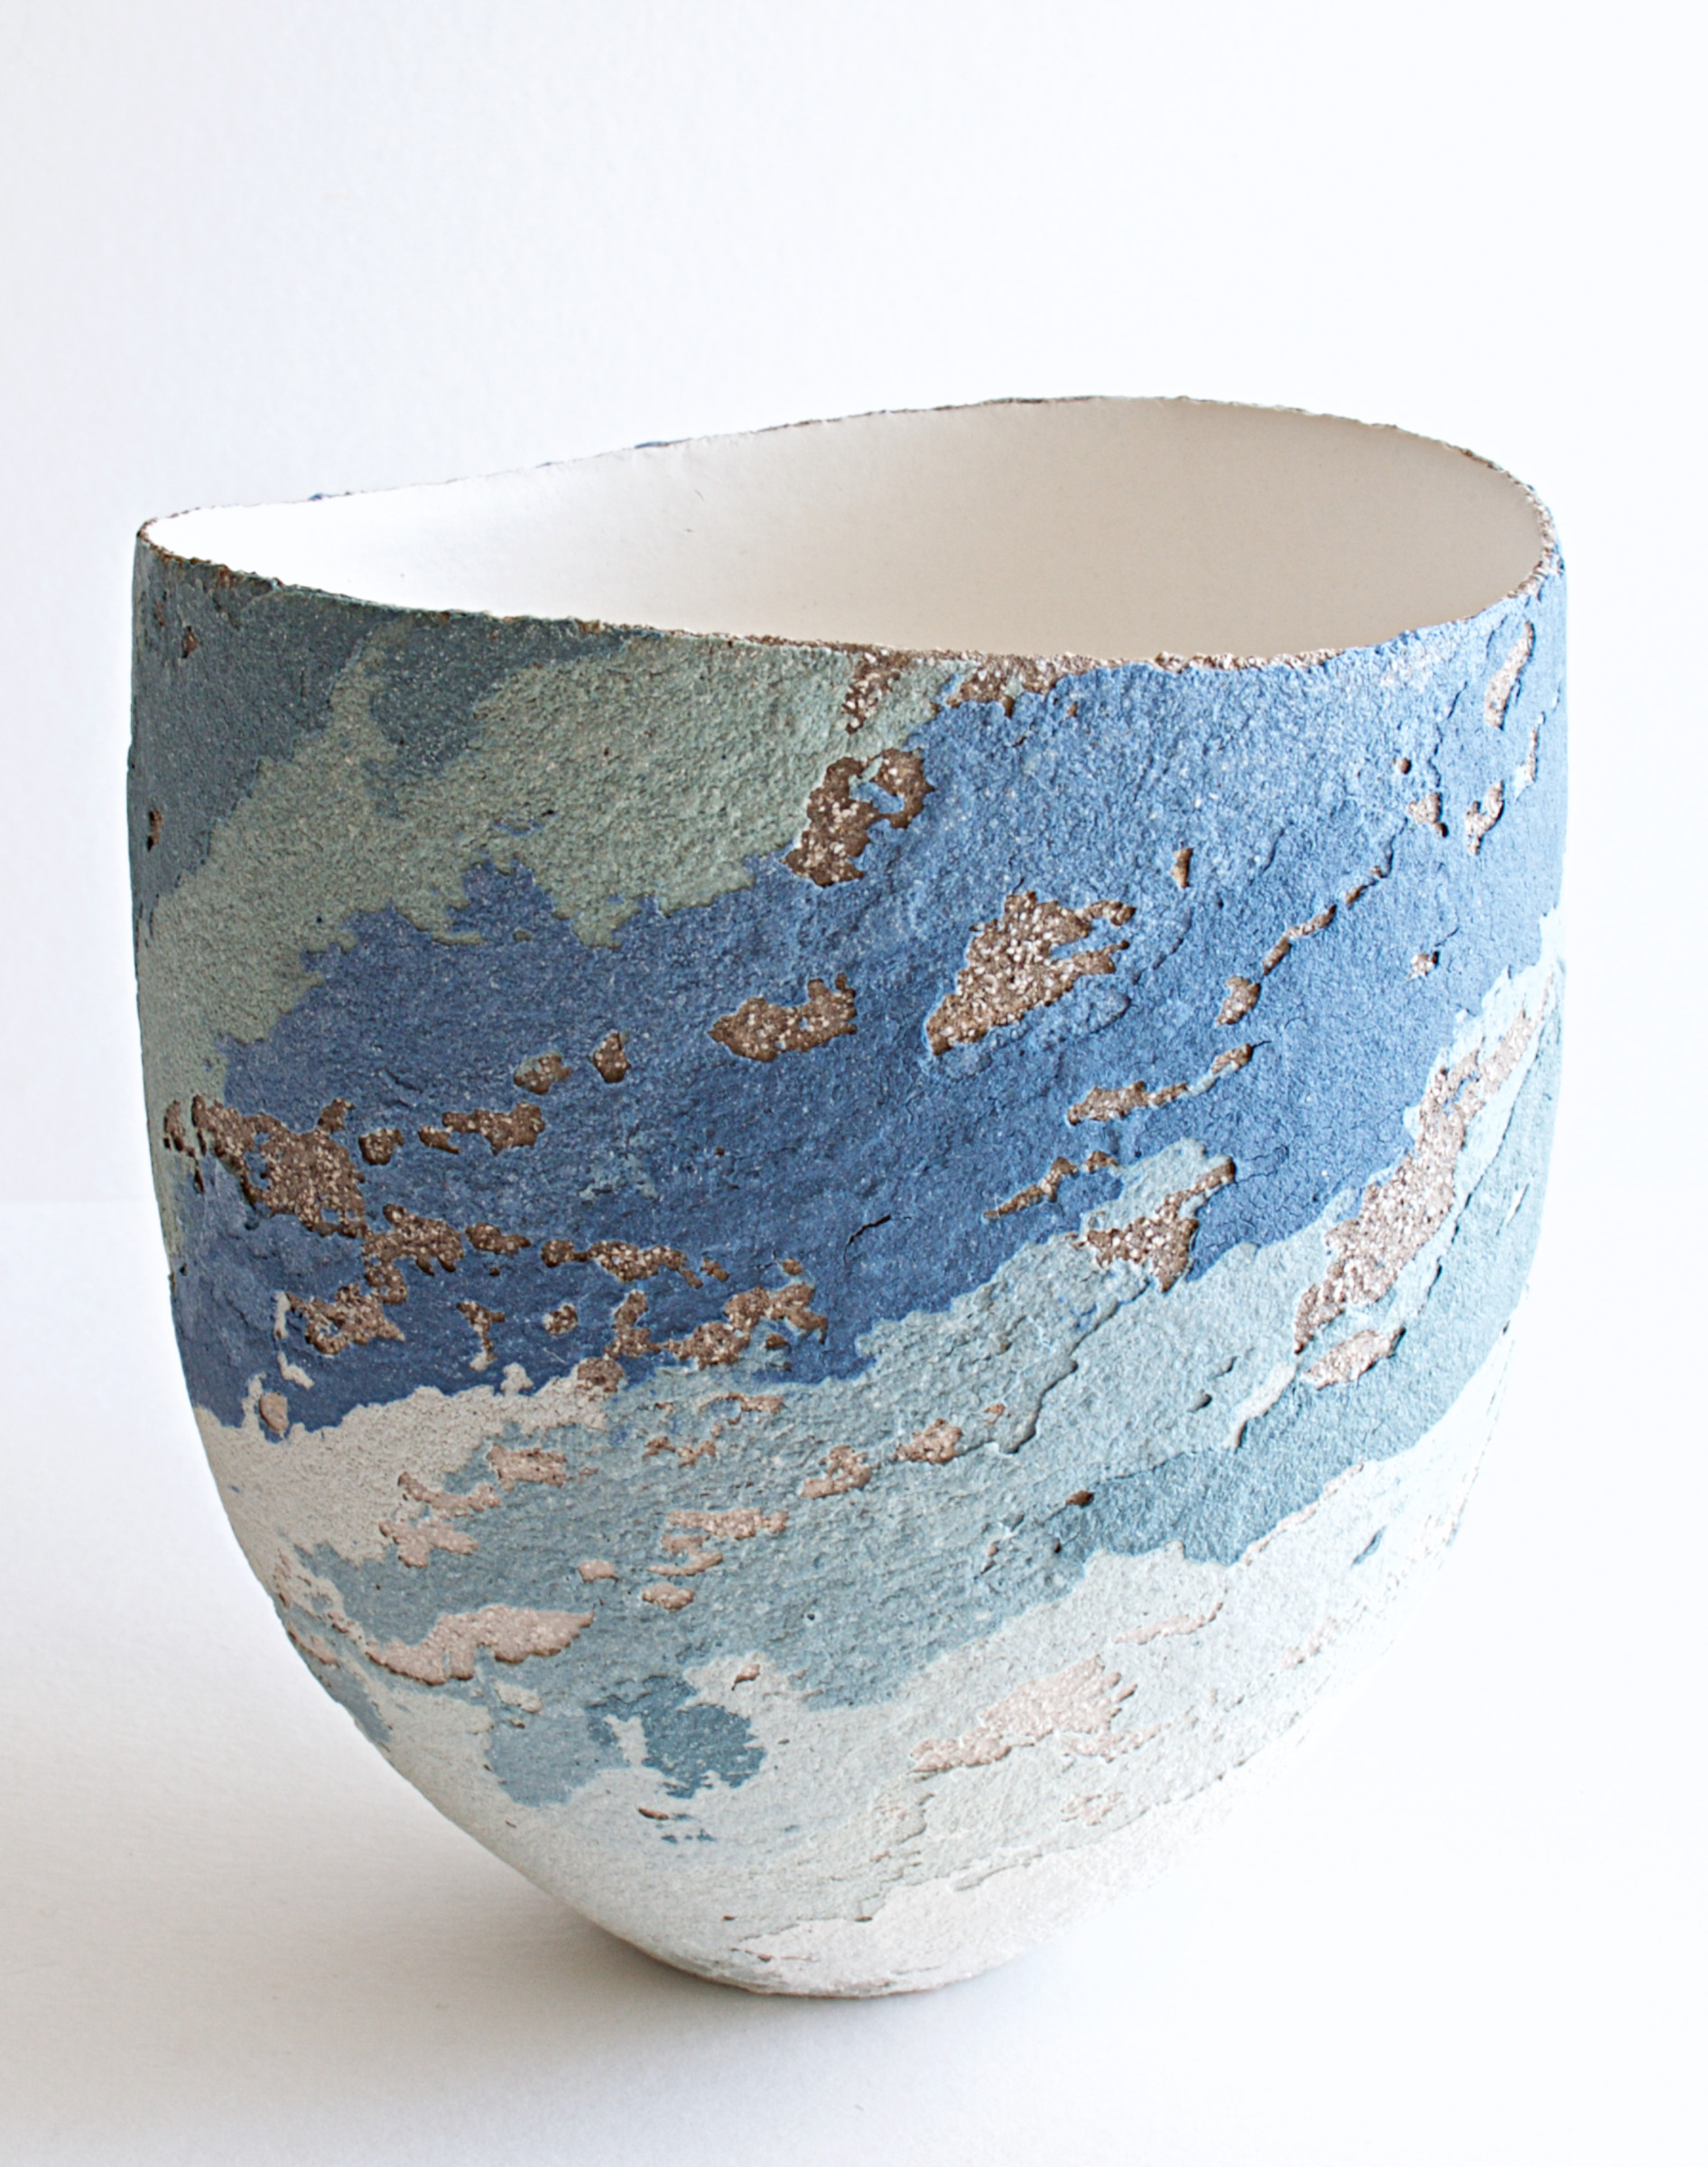 "<span class=""link fancybox-details-link""><a href=""/artists/79-clare-conrad/works/6927-clare-conrad-vessel-scooped-rim-2020/"">View Detail Page</a></span><div class=""artist""><strong>Clare Conrad</strong></div> <div class=""title""><em>Vessel, scooped rim</em>, 2020</div> <div class=""medium"">Stoneware</div> <div class=""dimensions"">h. 12.5 cm</div><div class=""price"">£165.00</div><div class=""copyright_line"">Copyright The Artist</div>"